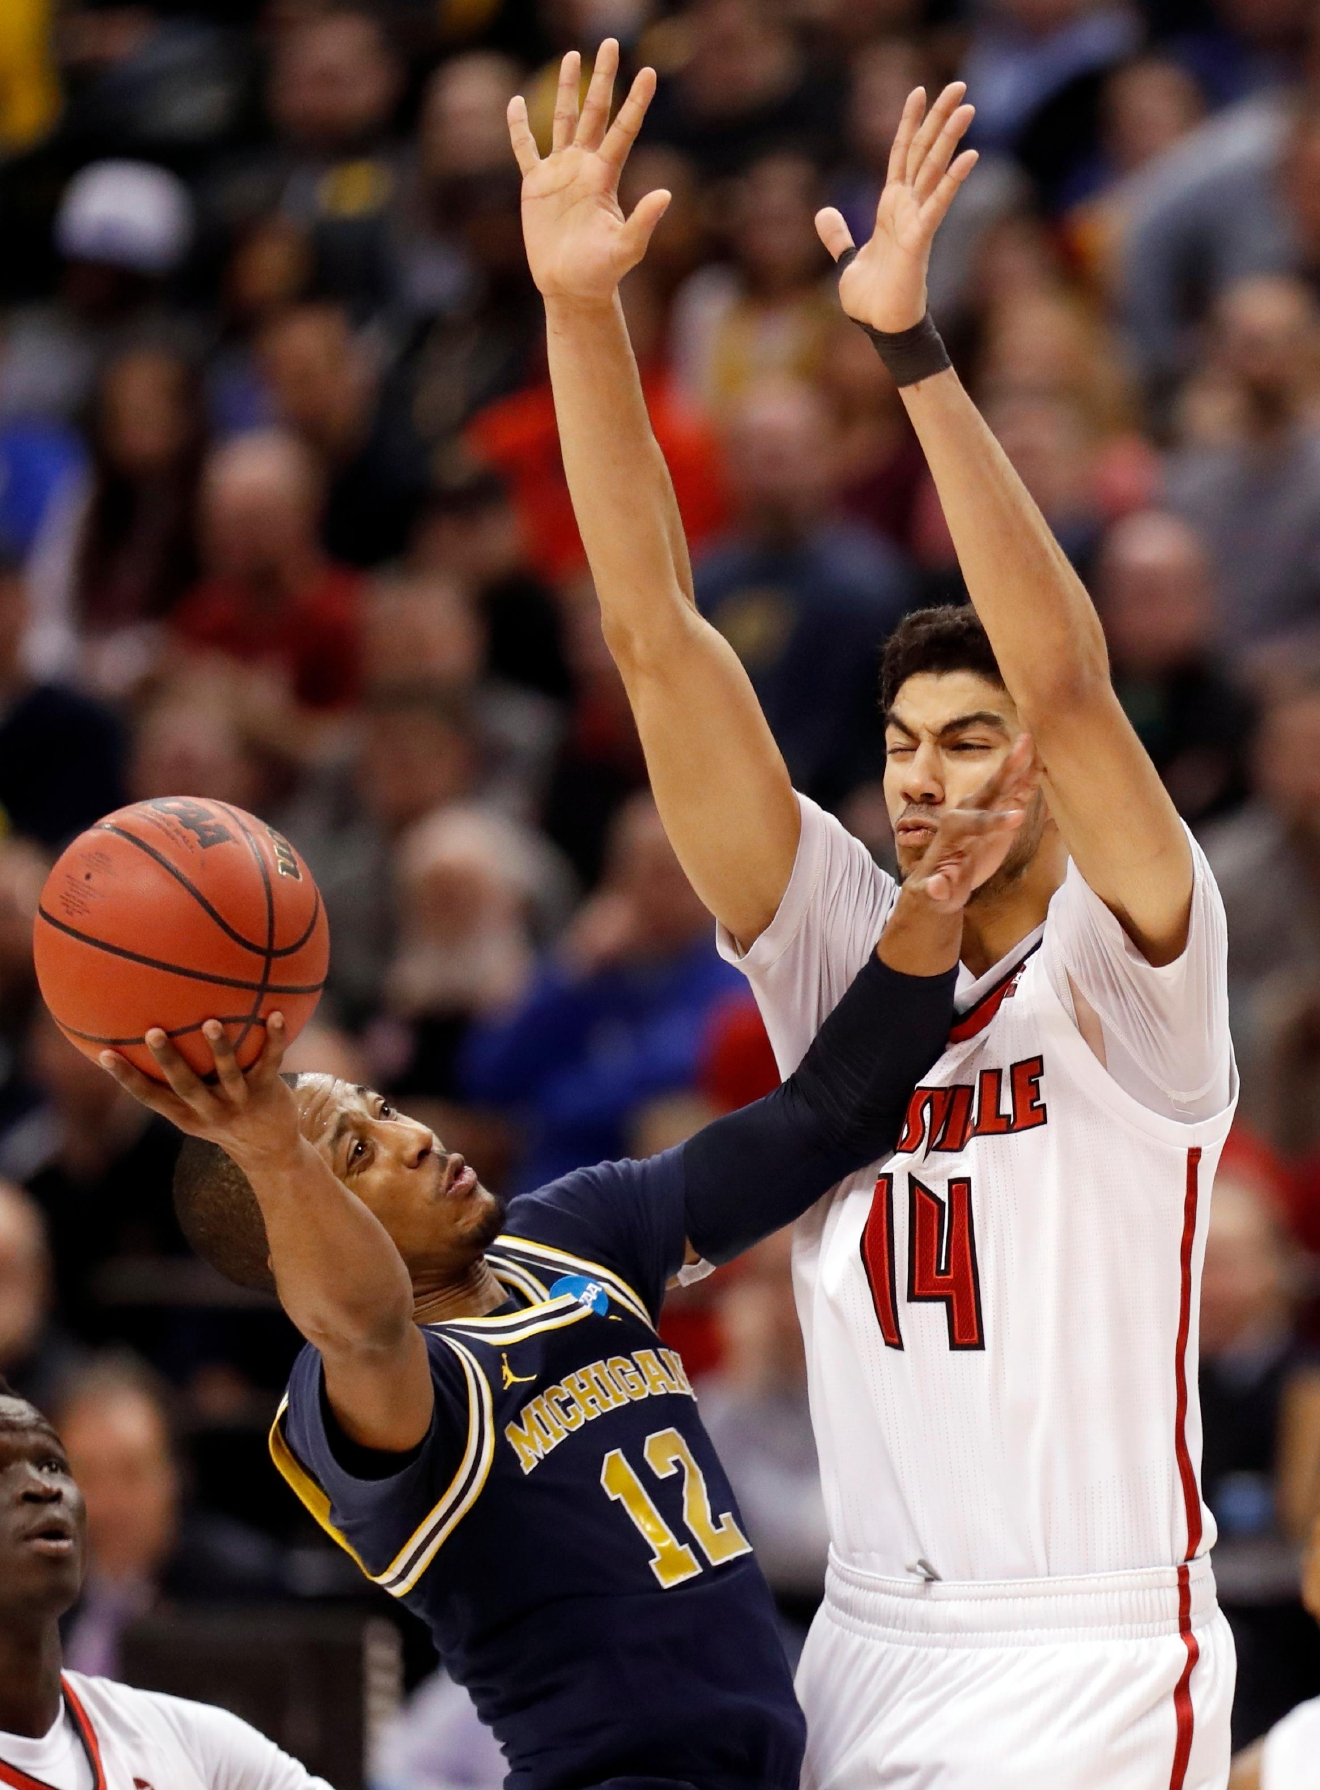 Michigan's Muhammad-Ali Abdur-Rahkman (12) heads to the basket as Louisville's Anas Mahmoud (14) defends during the second half of a second-round game in the men's NCAA college basketball tournament Sunday, March 19, 2017, in Indianapolis. Michigan won 73-69. (AP Photo/Jeff Roberson)